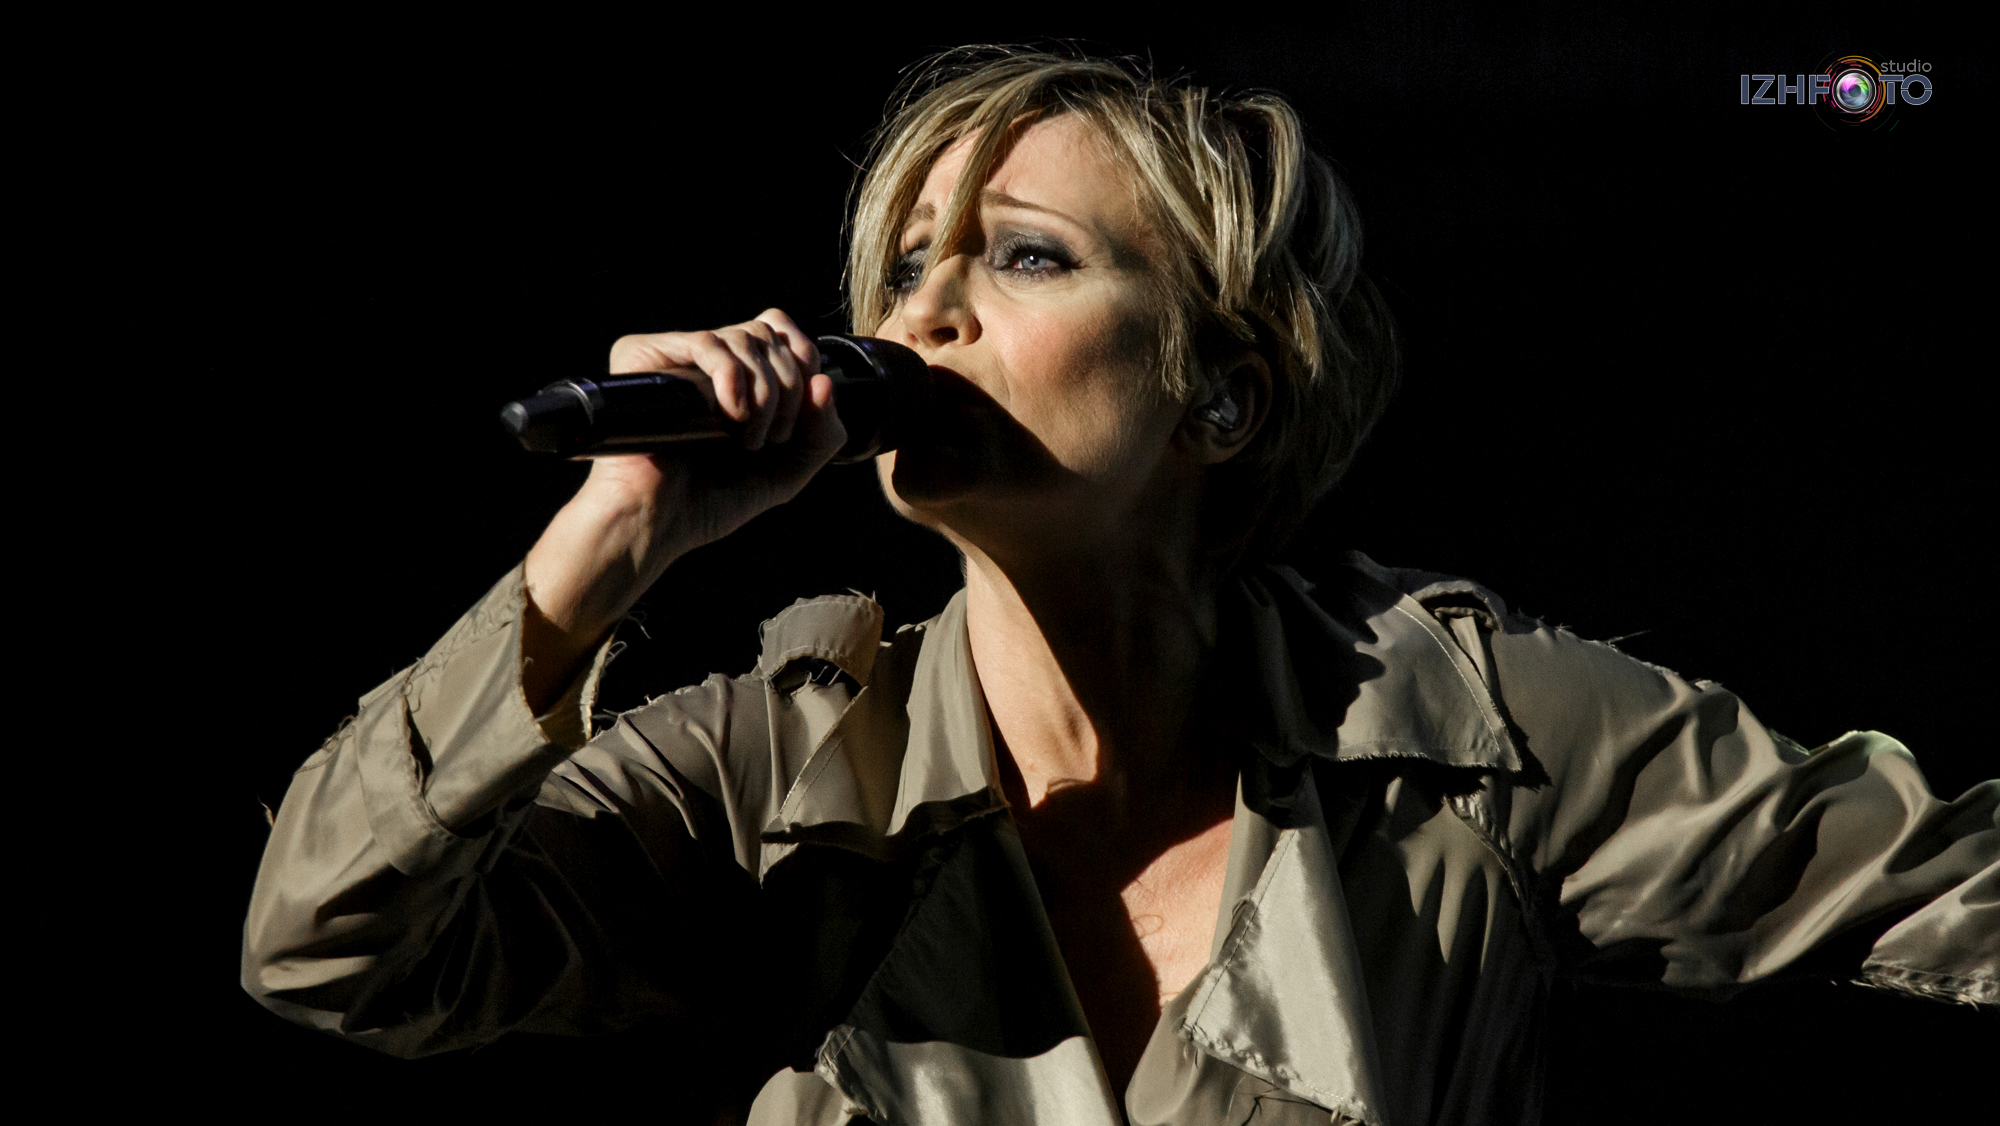 Photos from the concert Patricia Kaas